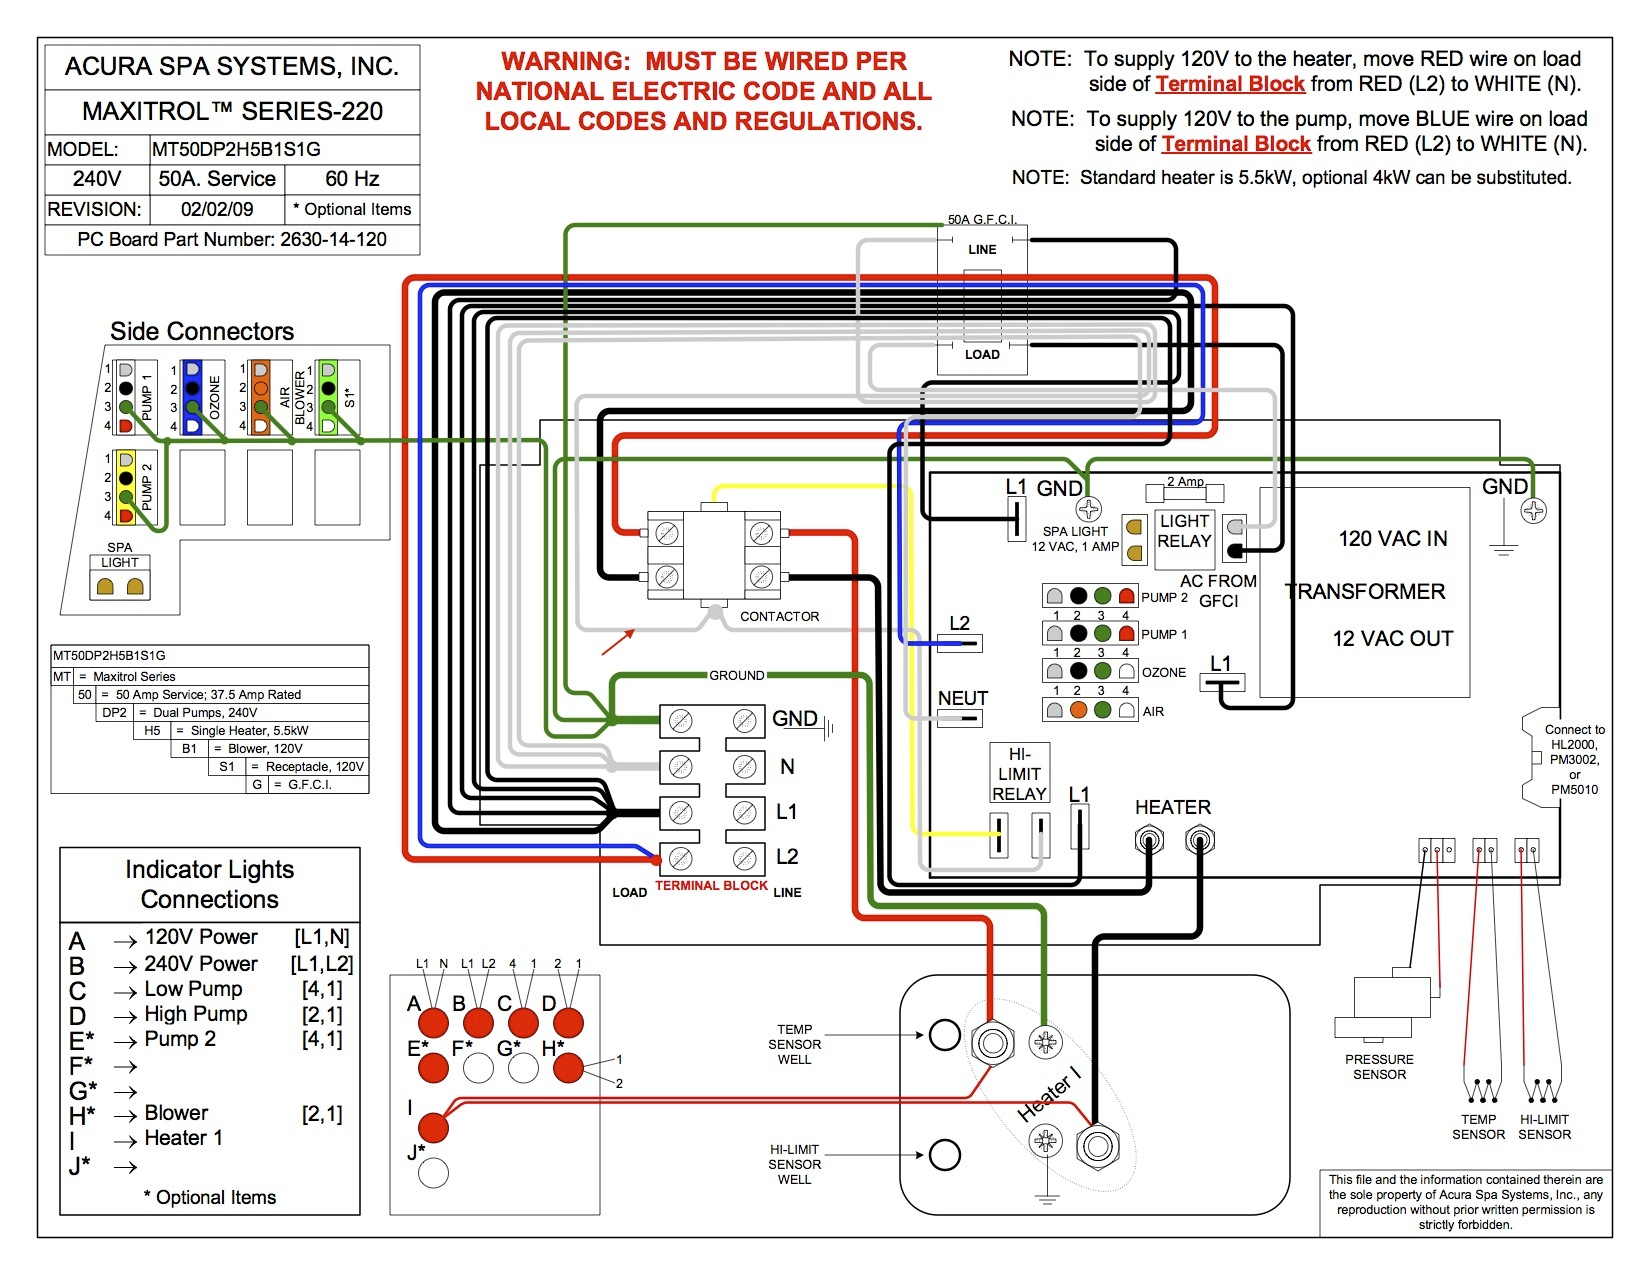 Maax Spa Wiring Diagram